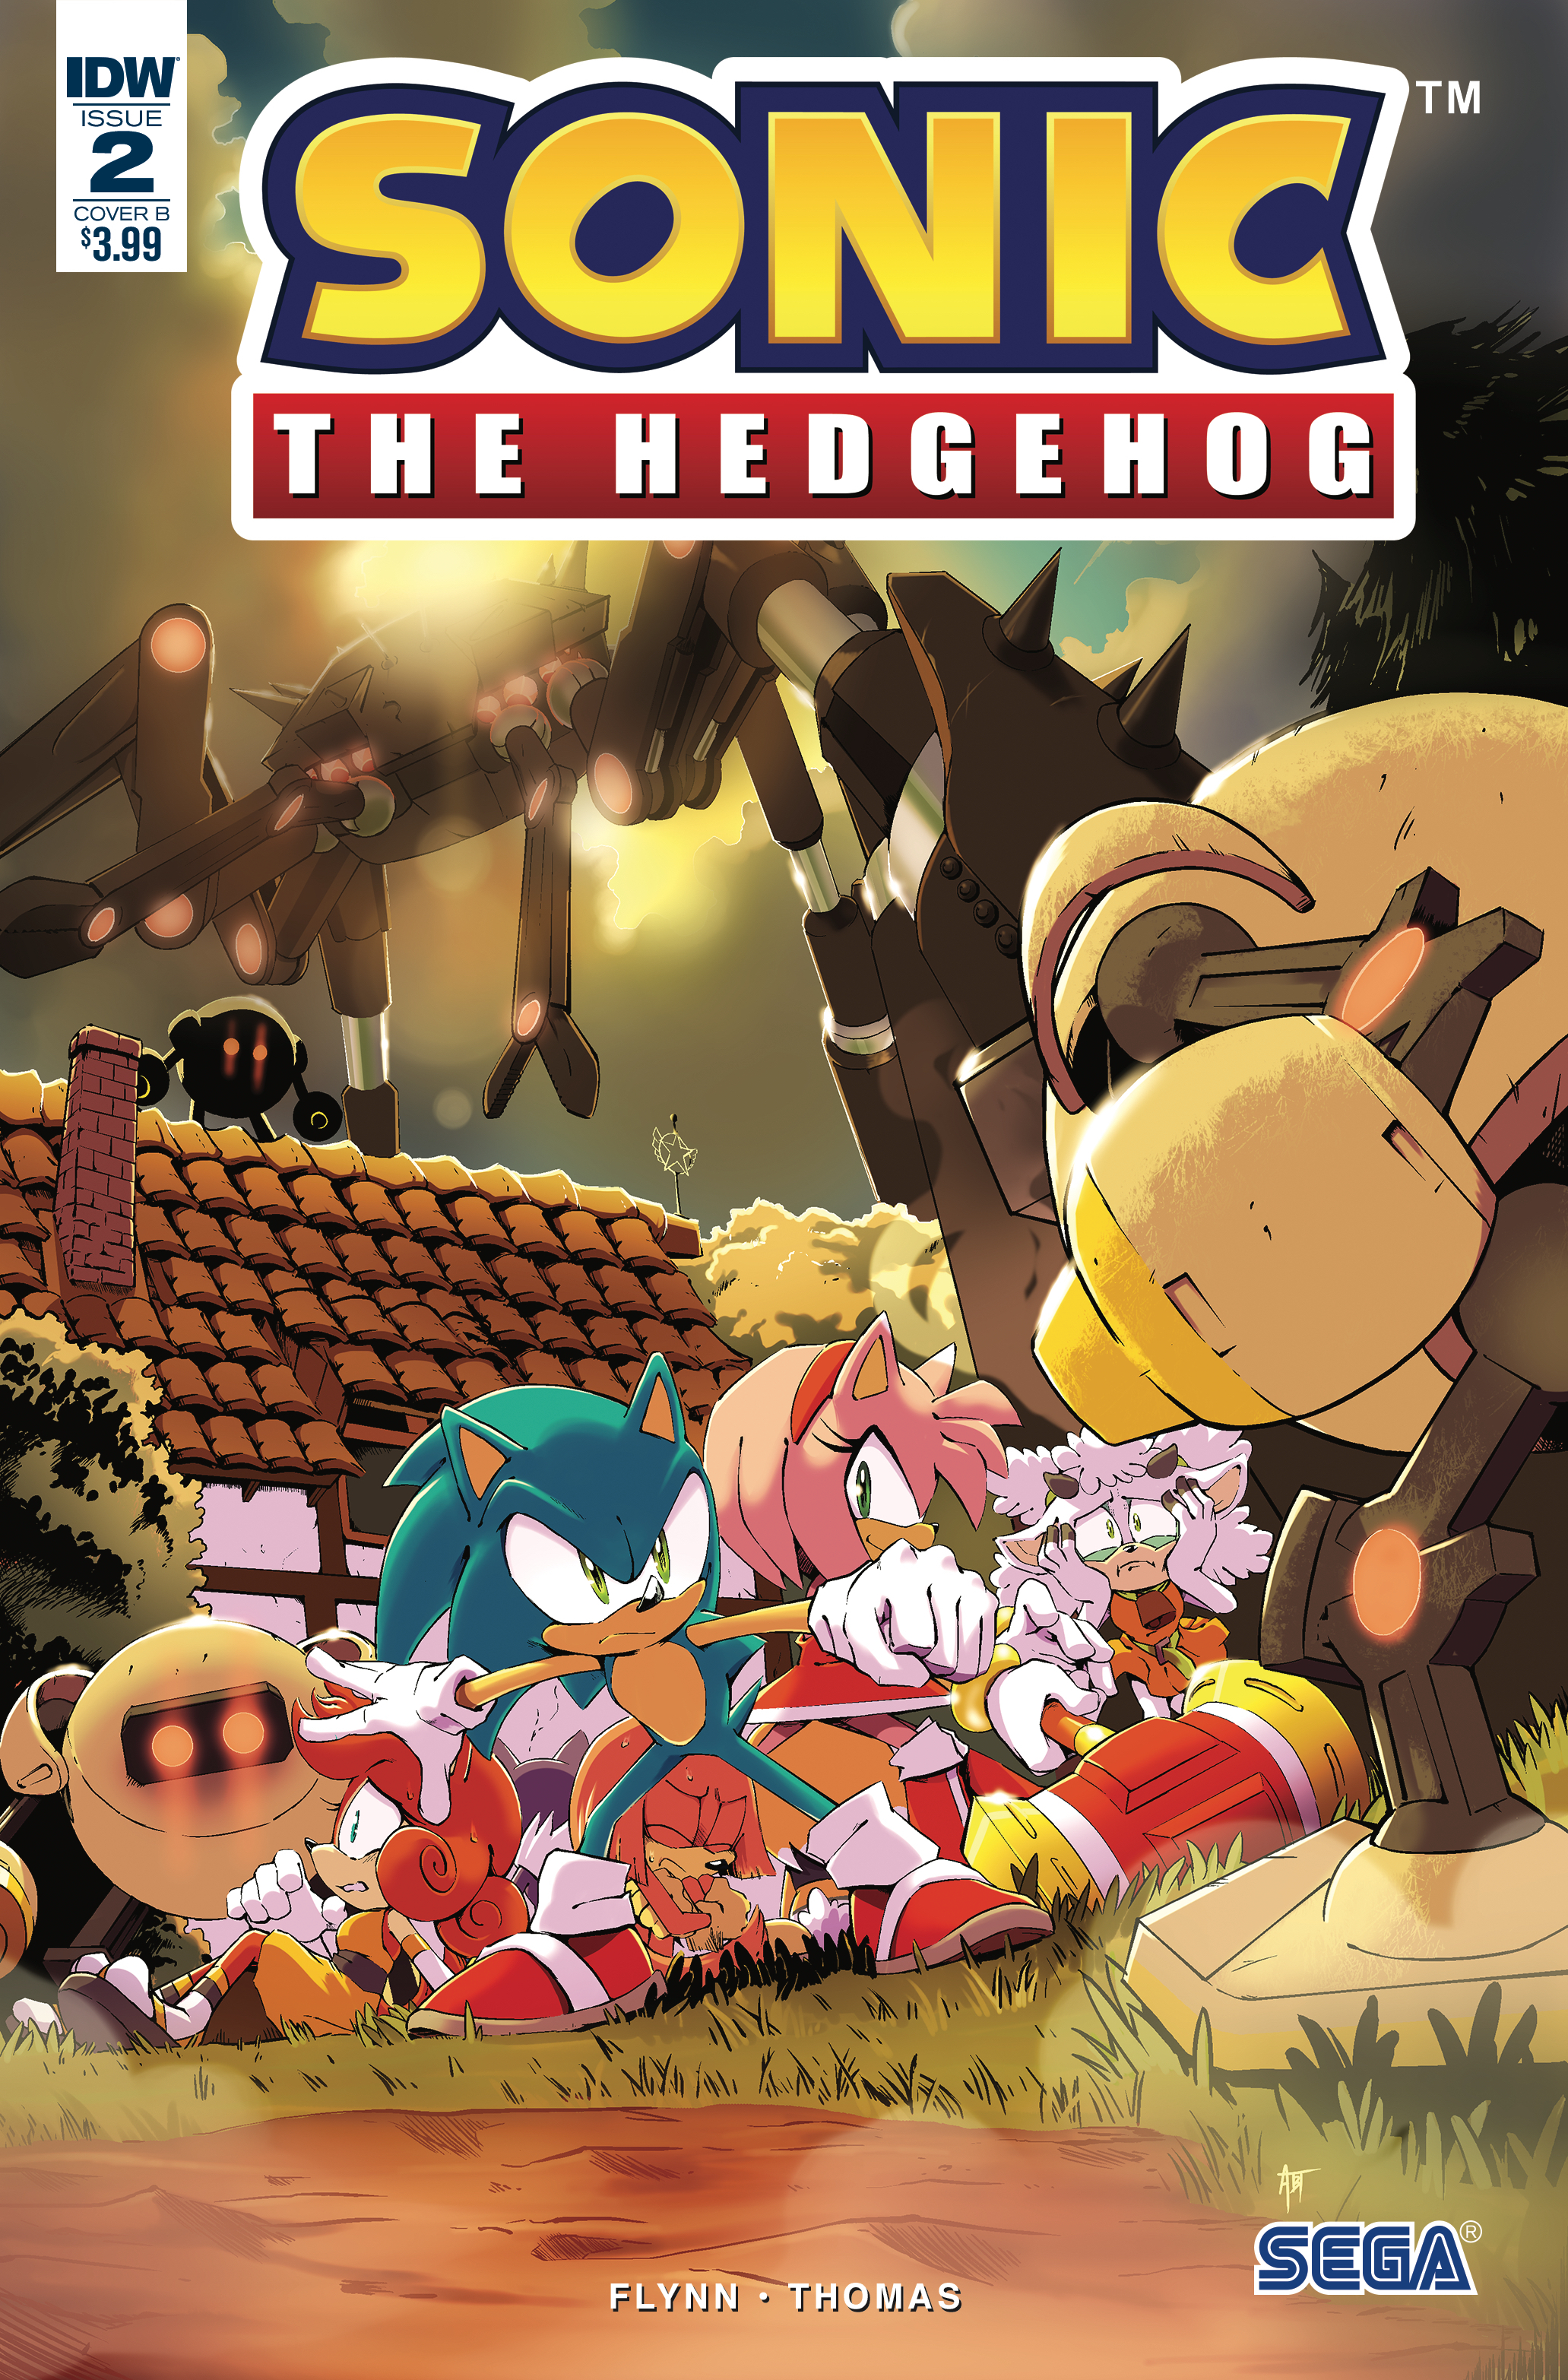 SONIC THE HEDGEHOG #2 CVR B THOMAS